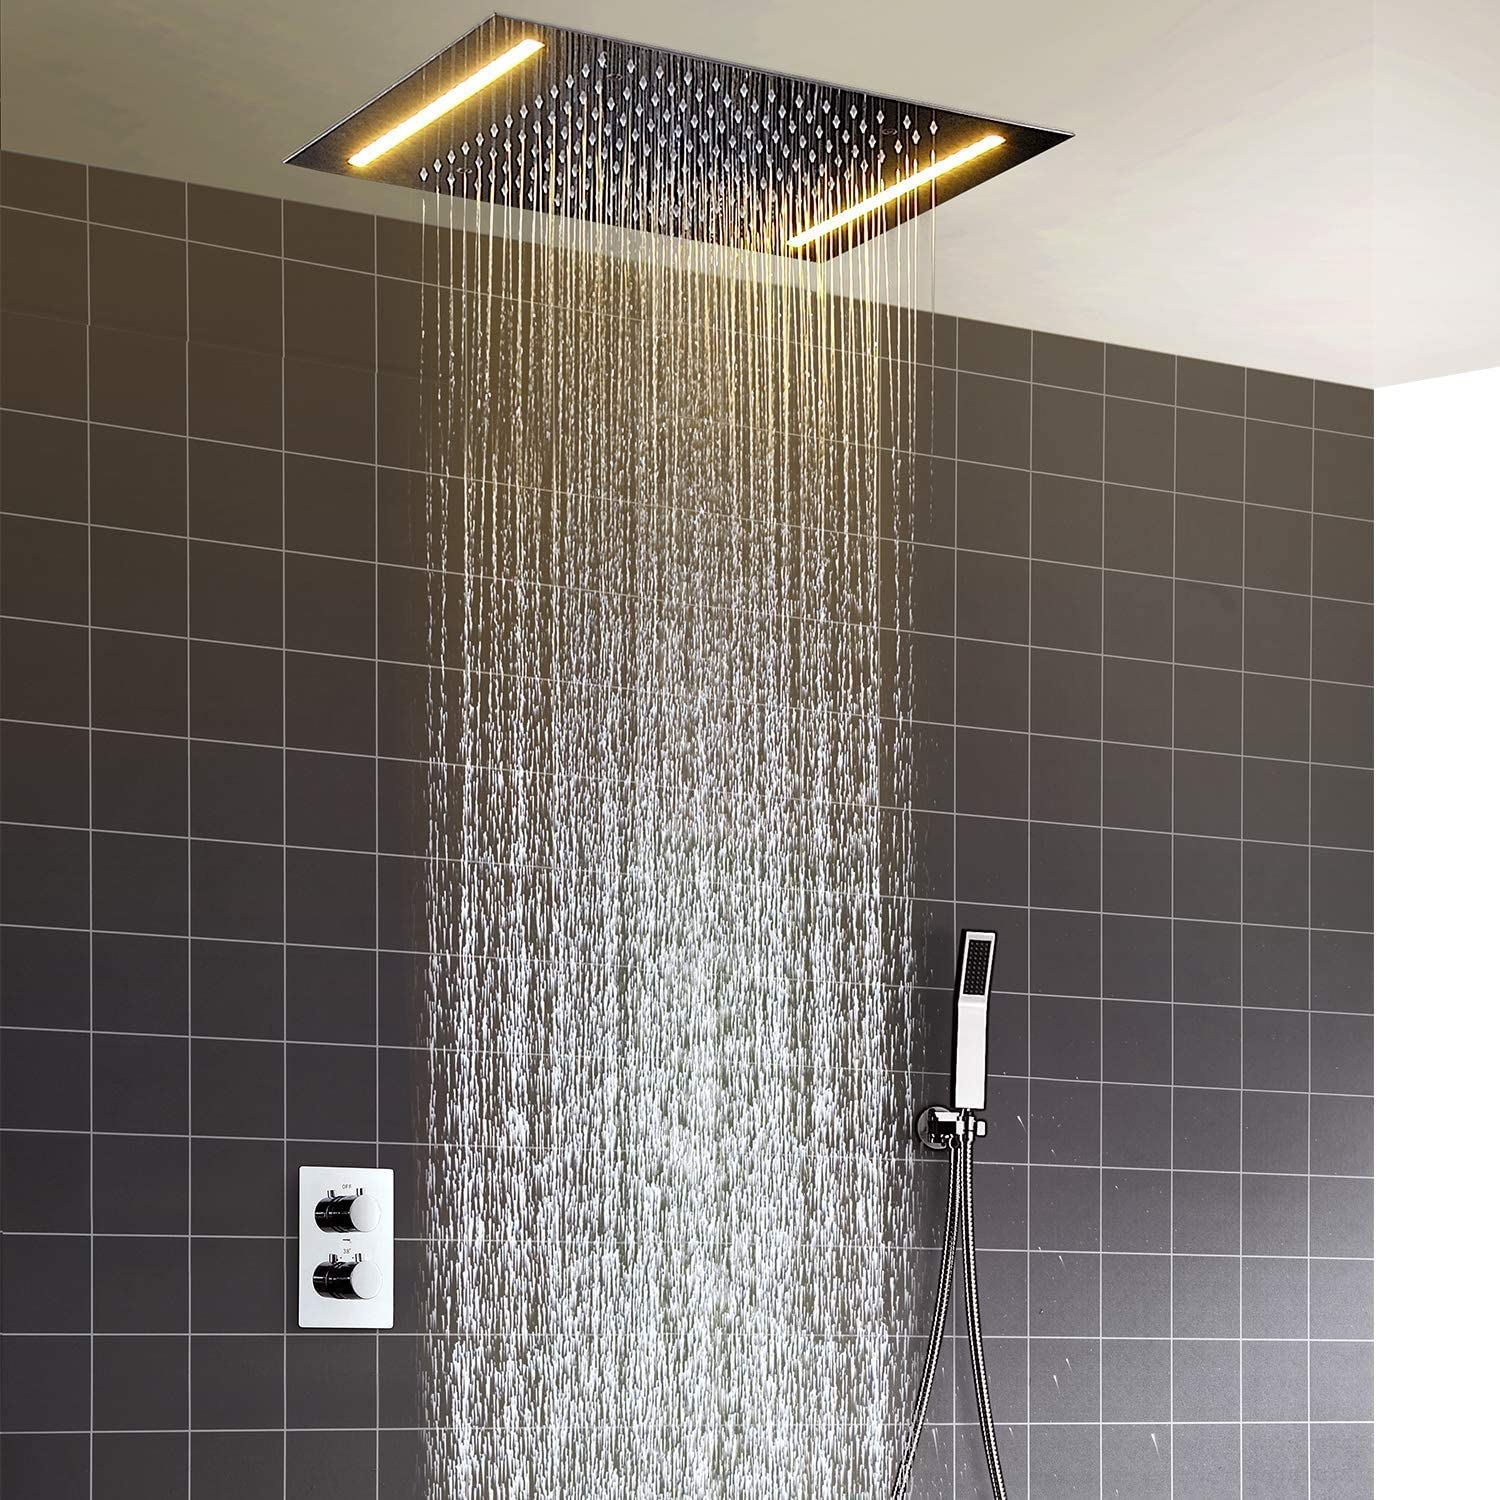 hm Shower System 20 Inch 360 500 x mm Clearance SALE! Limited time! Constant favorite LED Temperature